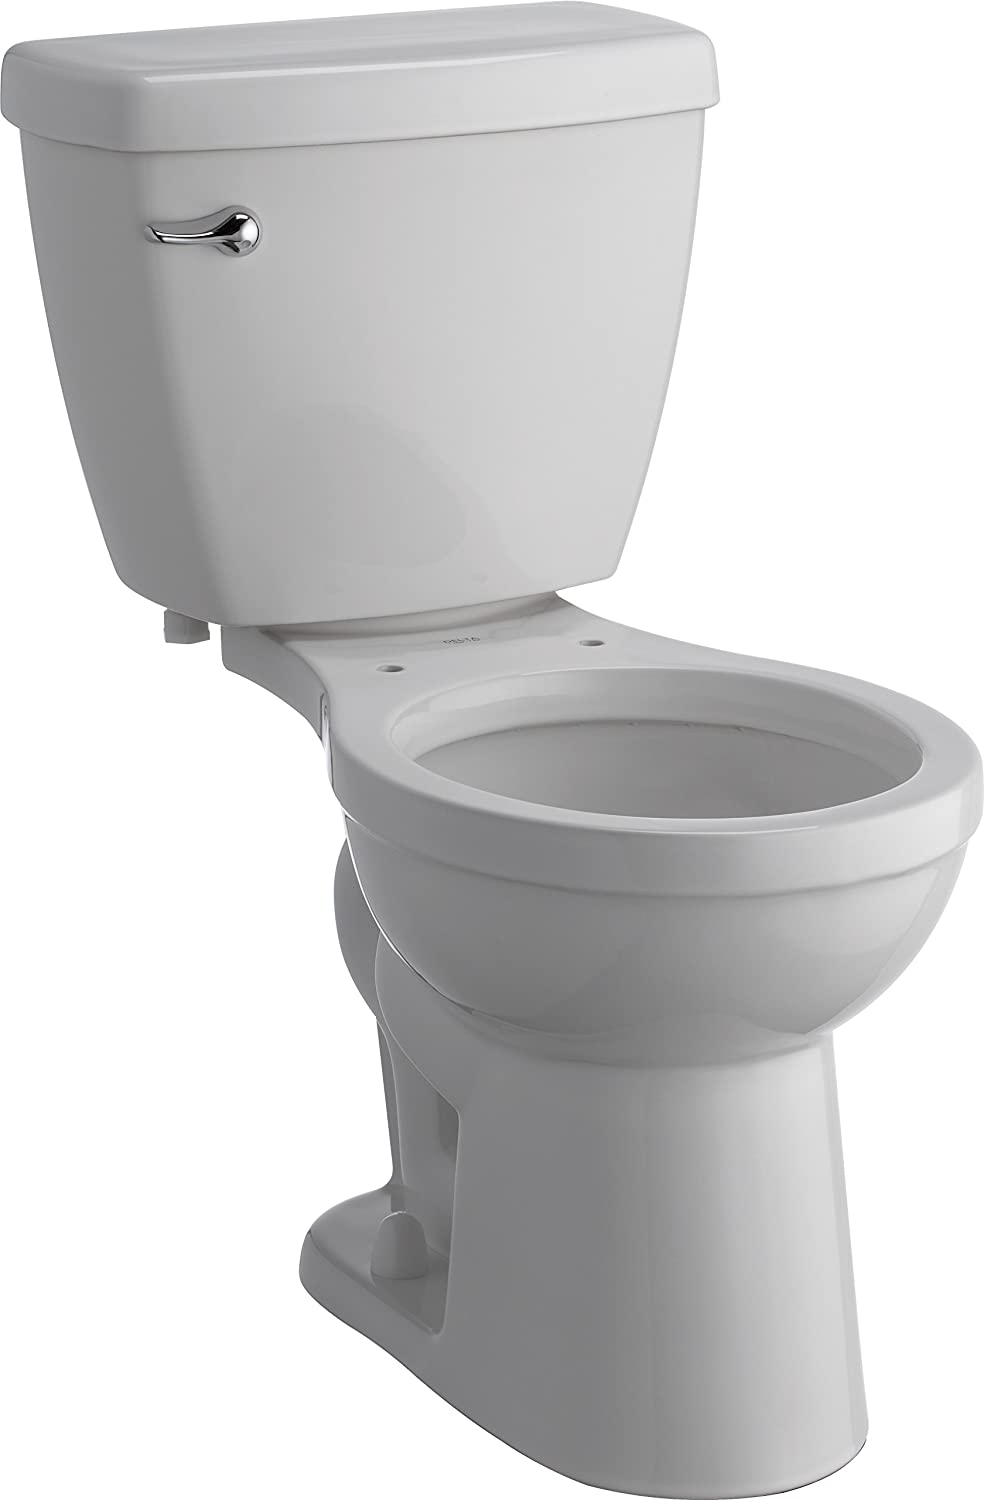 Toilets Amp Toilet Parts Online Shopping For Clothing